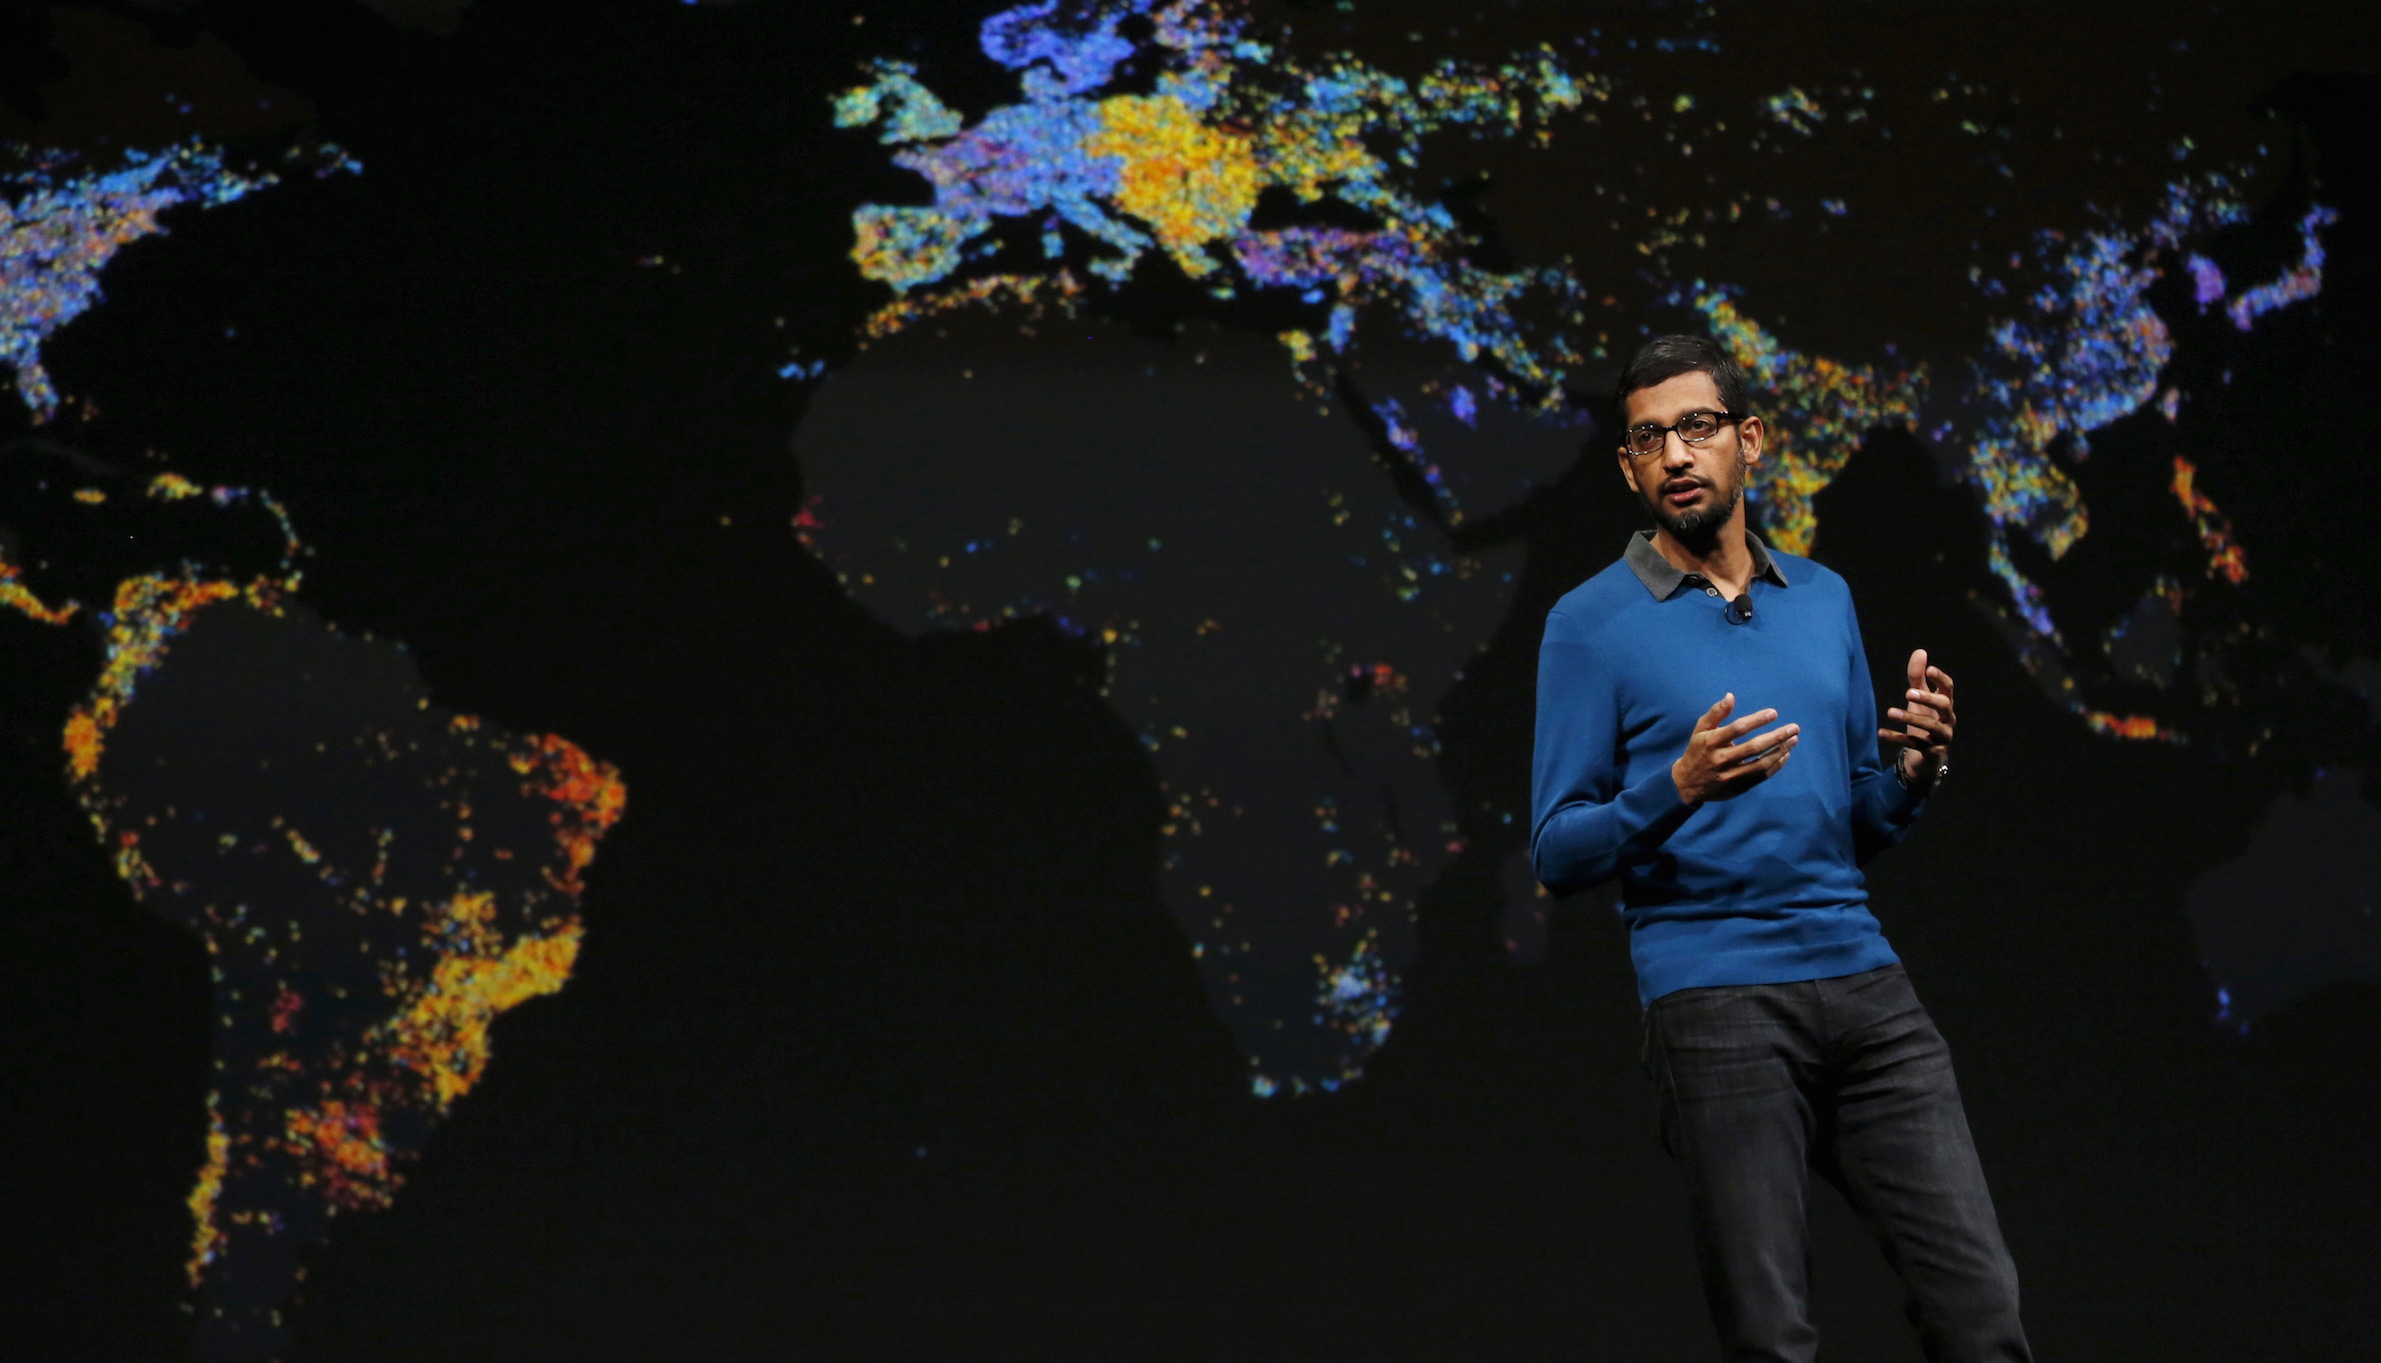 Sundar Pichai, Senior Vice President for products, delivers his keynote address during the Google I/O developers conference in San Francisco, California May 28, 2015. REUTERS/Robert Galbraith - RTX1EZC0